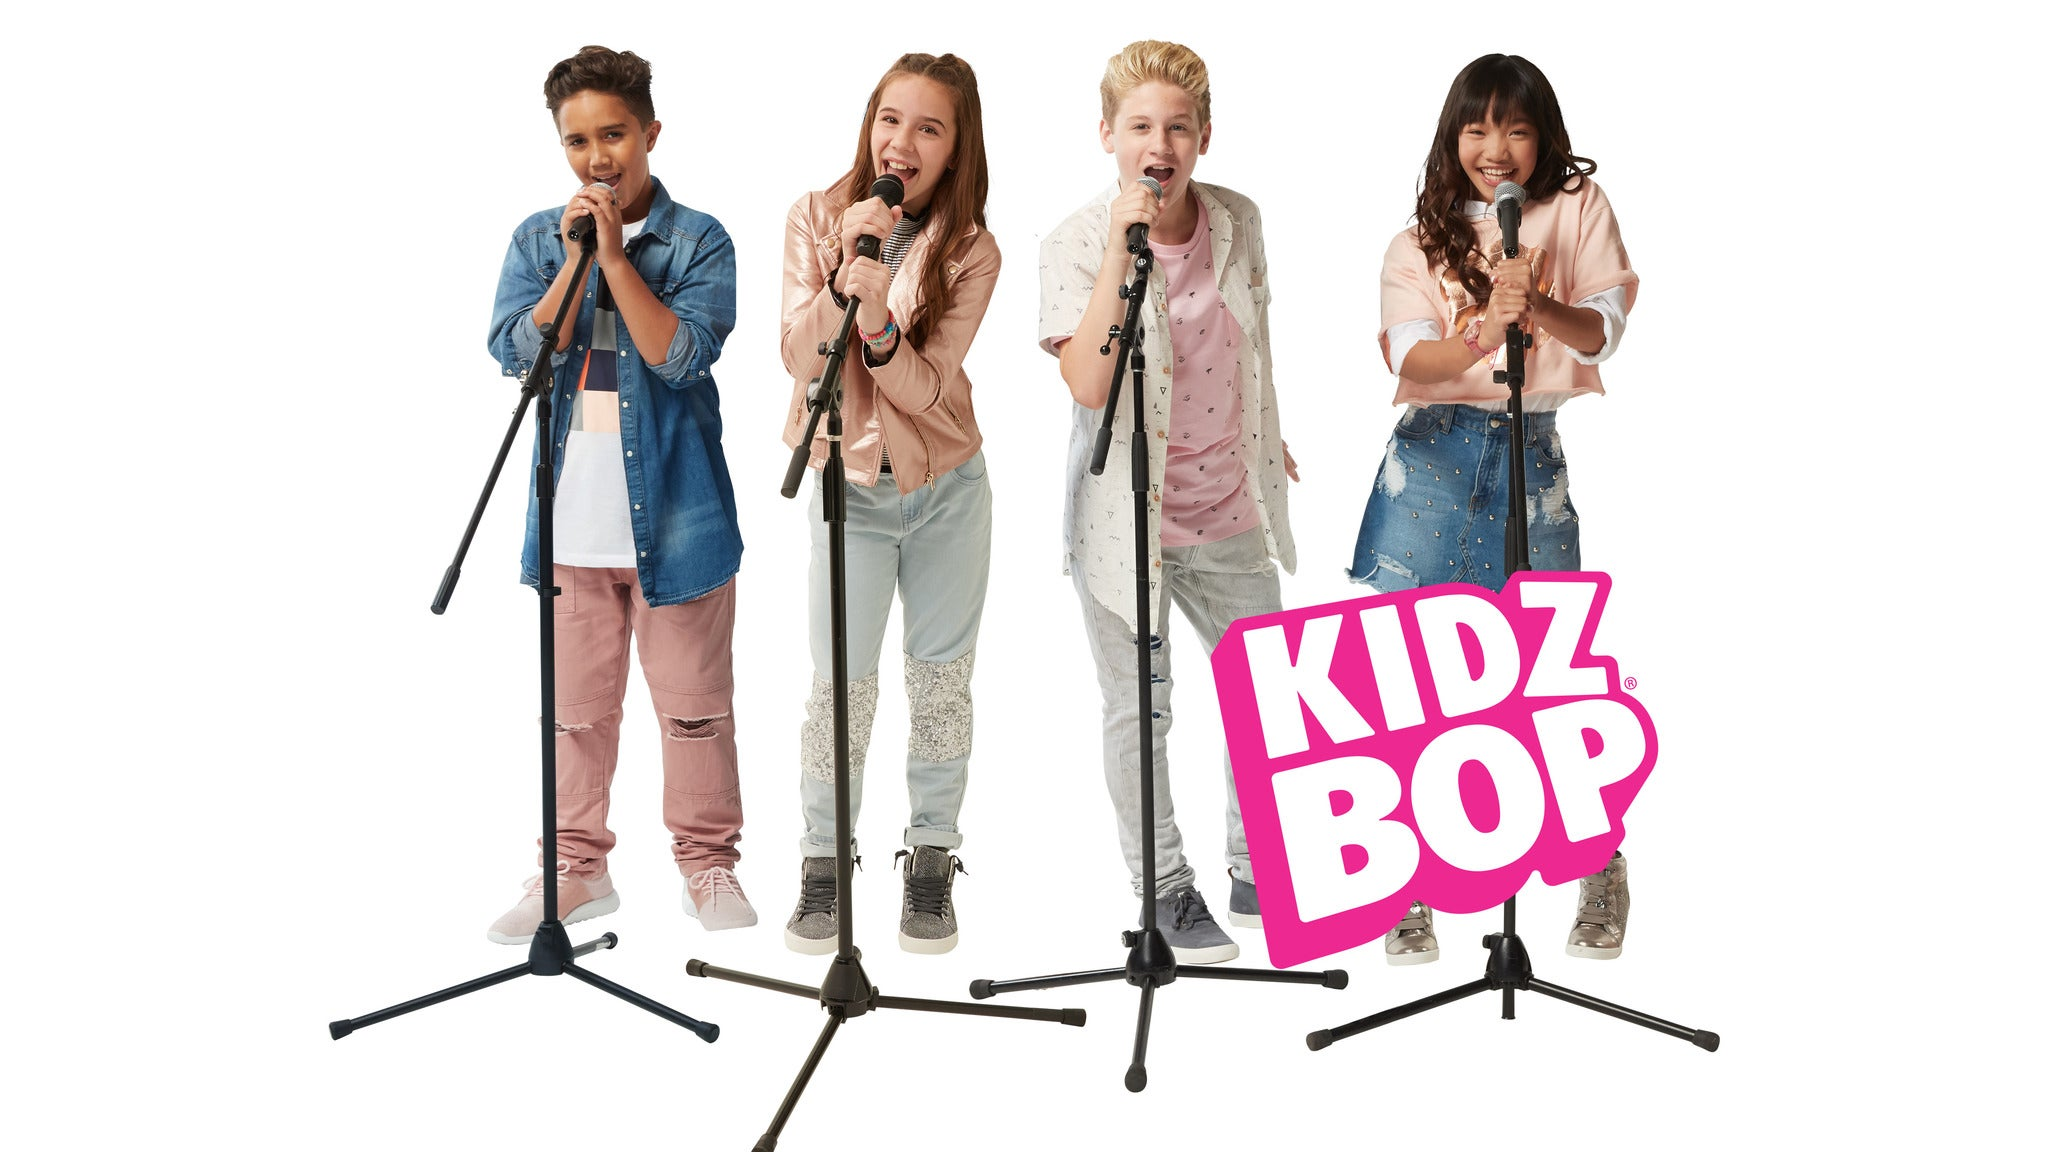 The KIDZ BOP 2018 Tour presented by Dollar Car Rental